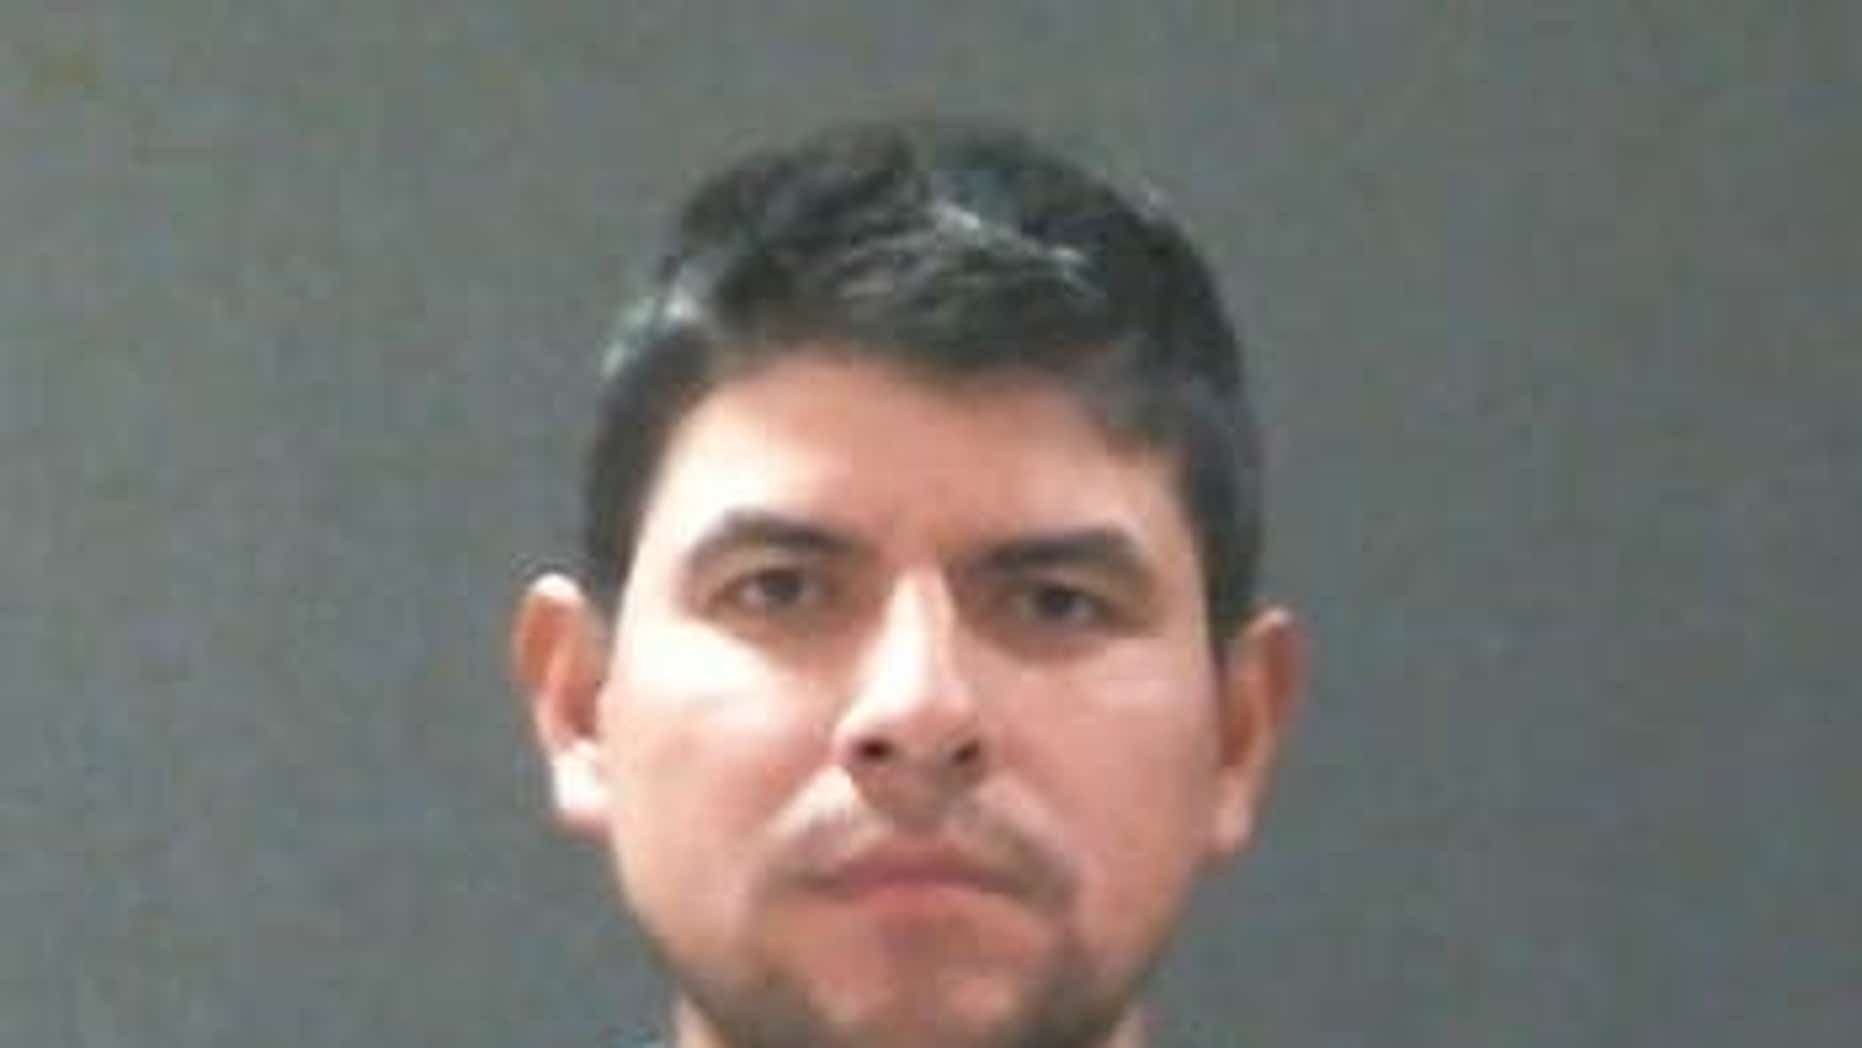 Roli Aroldo Lopez-Sanchez, 37has been sentenced to 60 years in prison without eligibility for parole or good time credit for impregnating an 11-year-old last year.